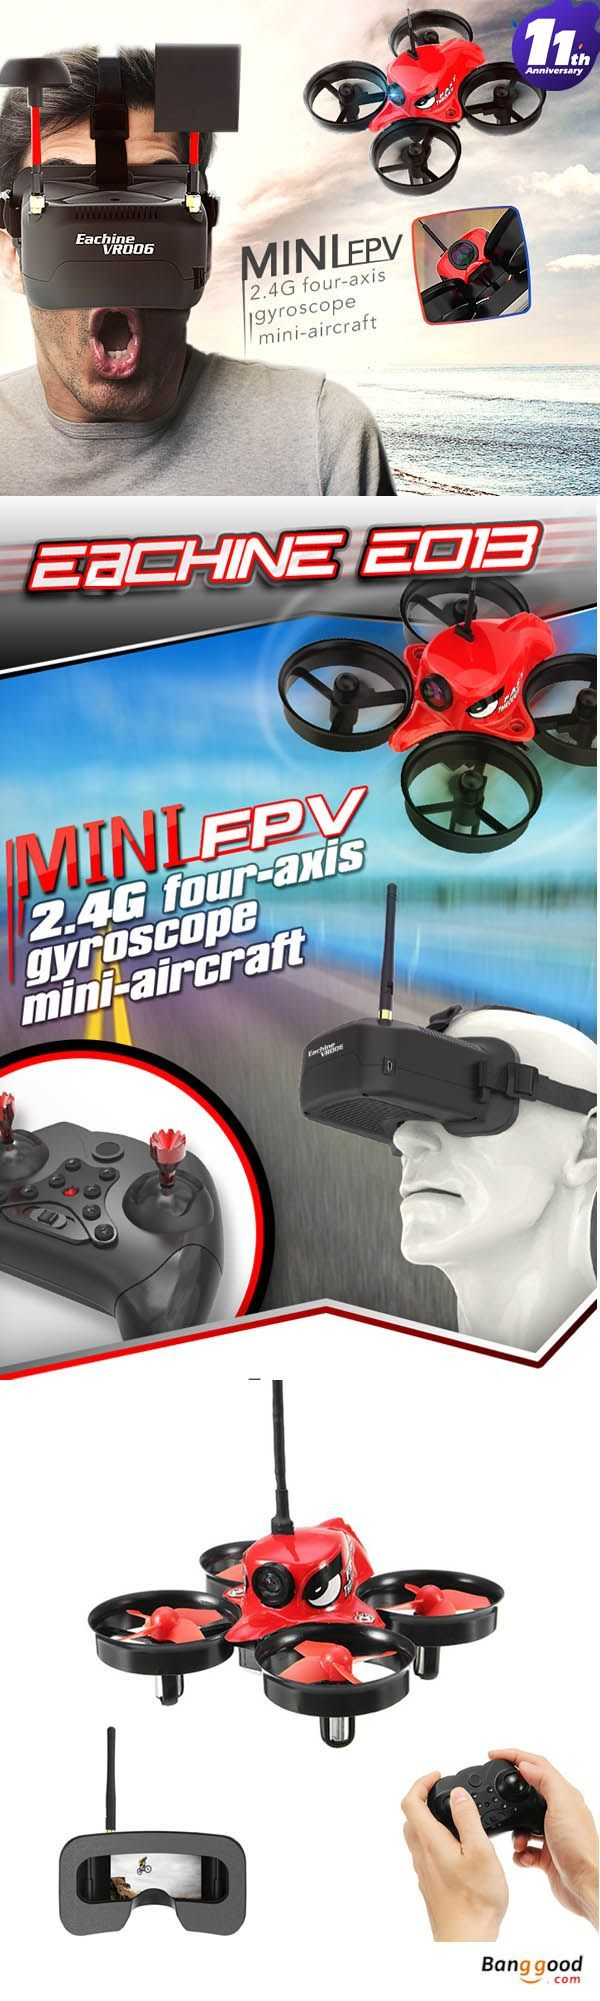 US$35.99~65.99 + Free shipping. Eachine E013 Mini Quadcopter. FPV first-person view(indoor racing drone). Breakthrough conventional wind blades, the flight stability is more powerful. See more.